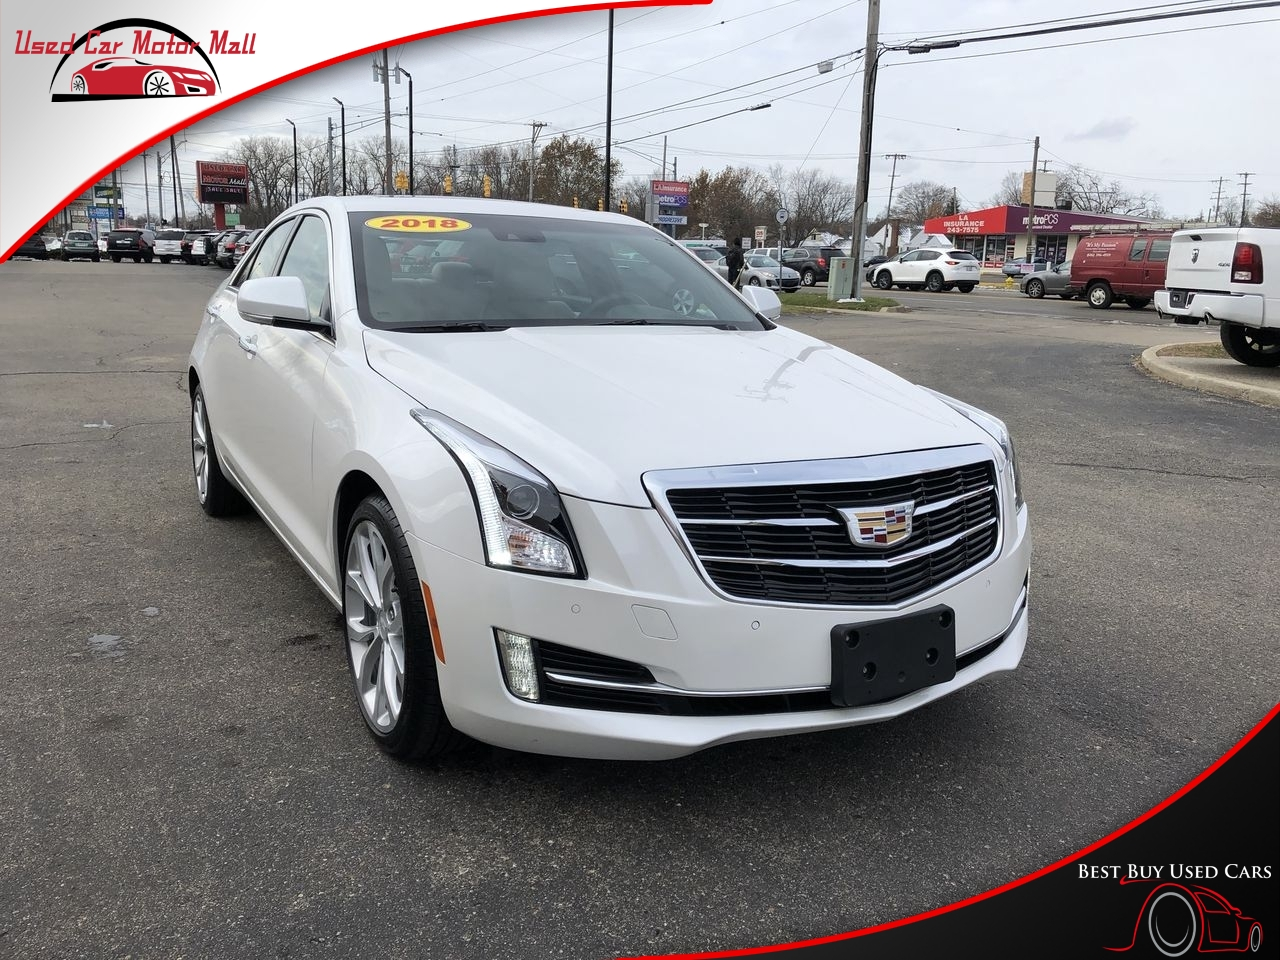 2013 Cadillac ATS 2.5L RWD, 135377, Photo 1